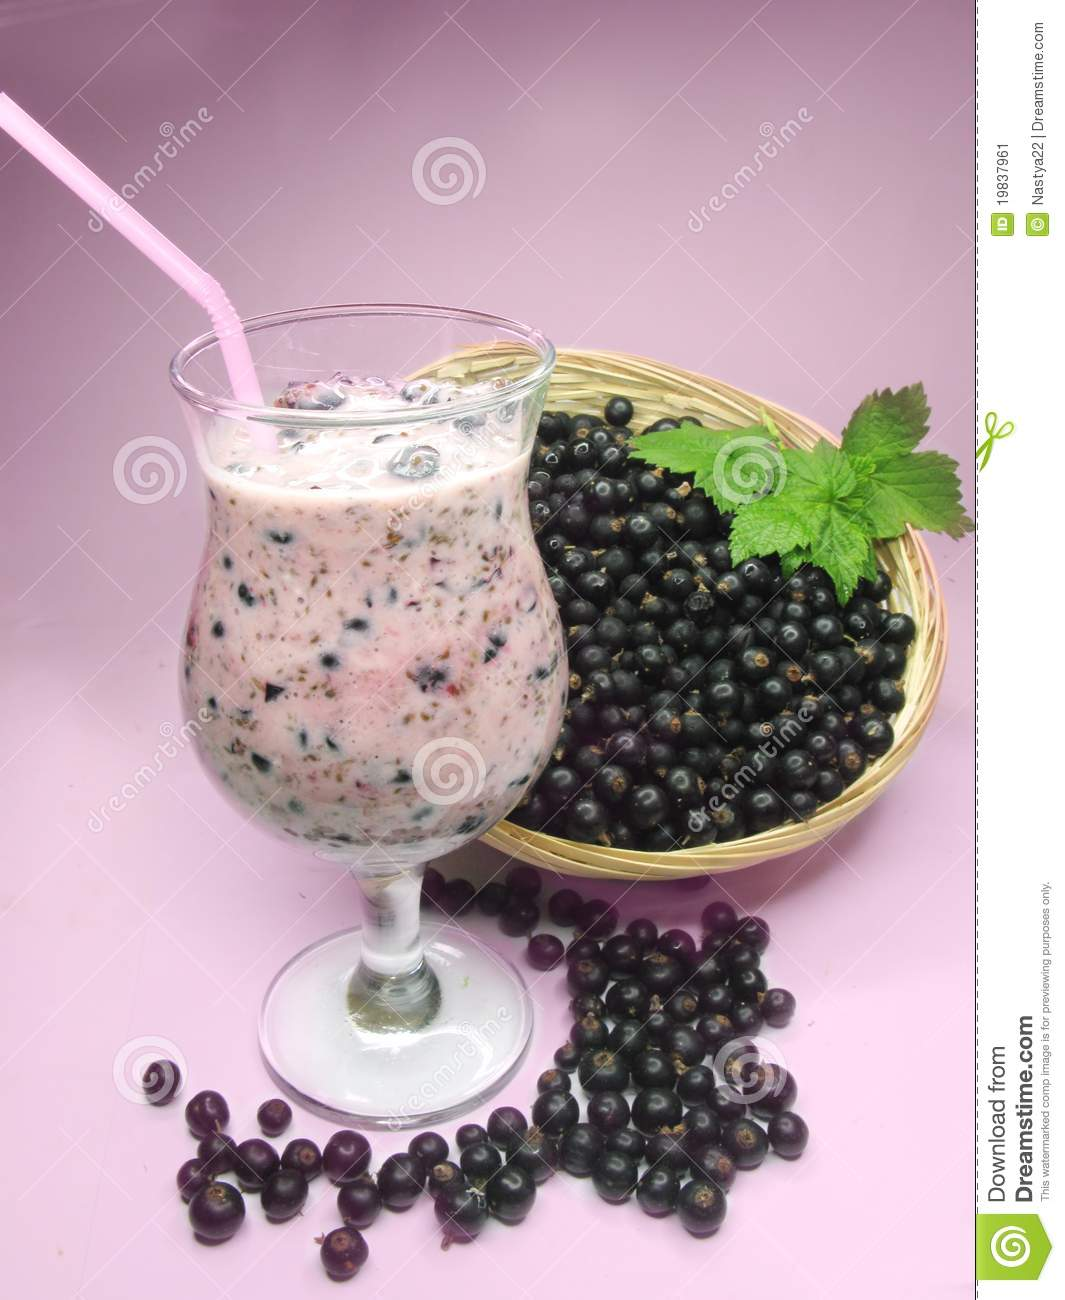 red currant cordial with Stock Image Fruit Smoothie Yogurt Currant Image19837961 on Receitas De Groselha as well Mix Your Garnish Game These Unexpected Flora further Brilliant Blackcurrant Cordial furthermore Pineapple Glazed Ham additionally Roland Designs blogspot.